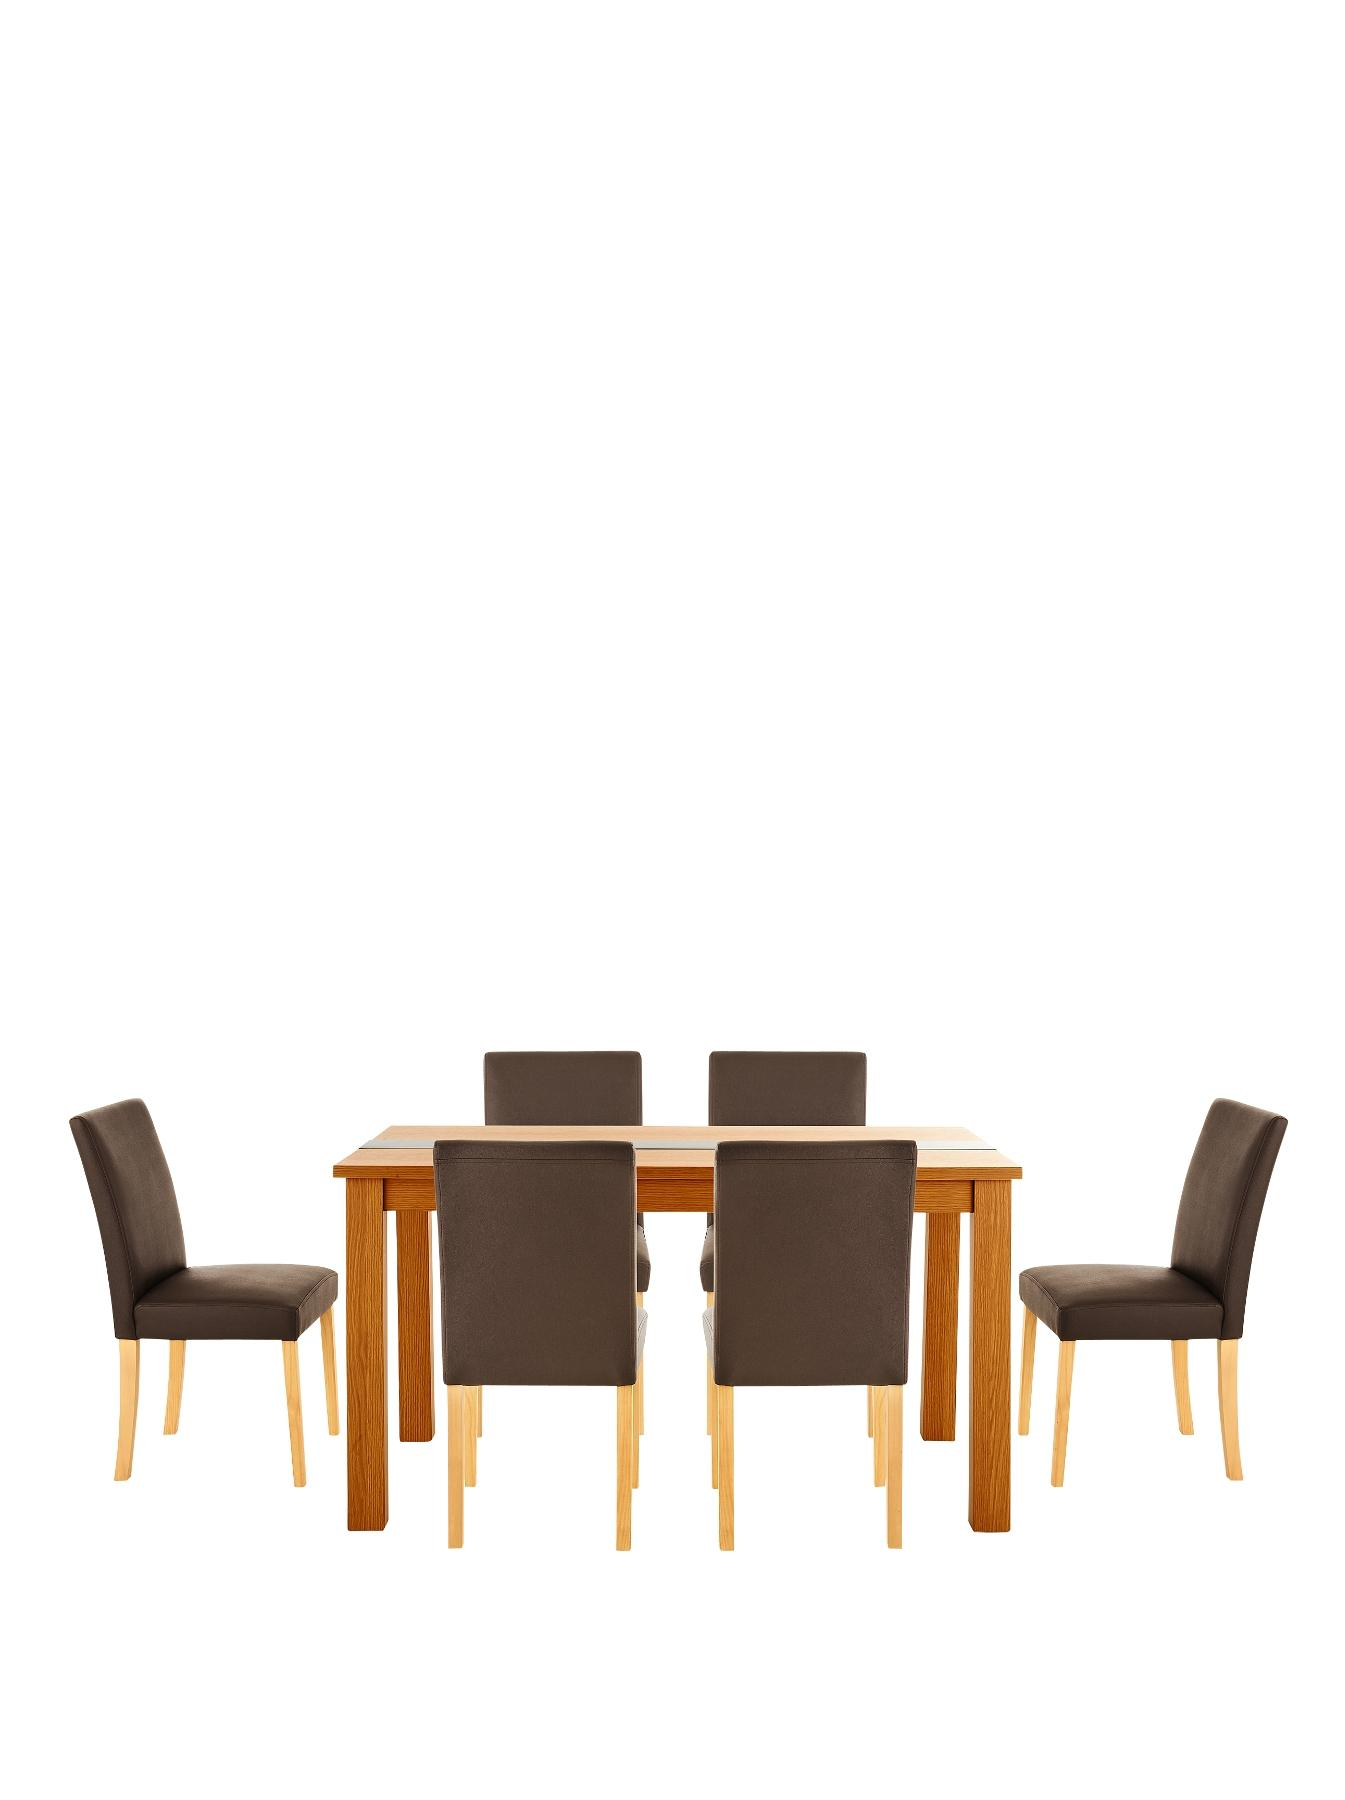 Primo 150 cm Glass Panel Dining Table and 6 Lucca Chairs Set - Black, Black,Cream,Brown